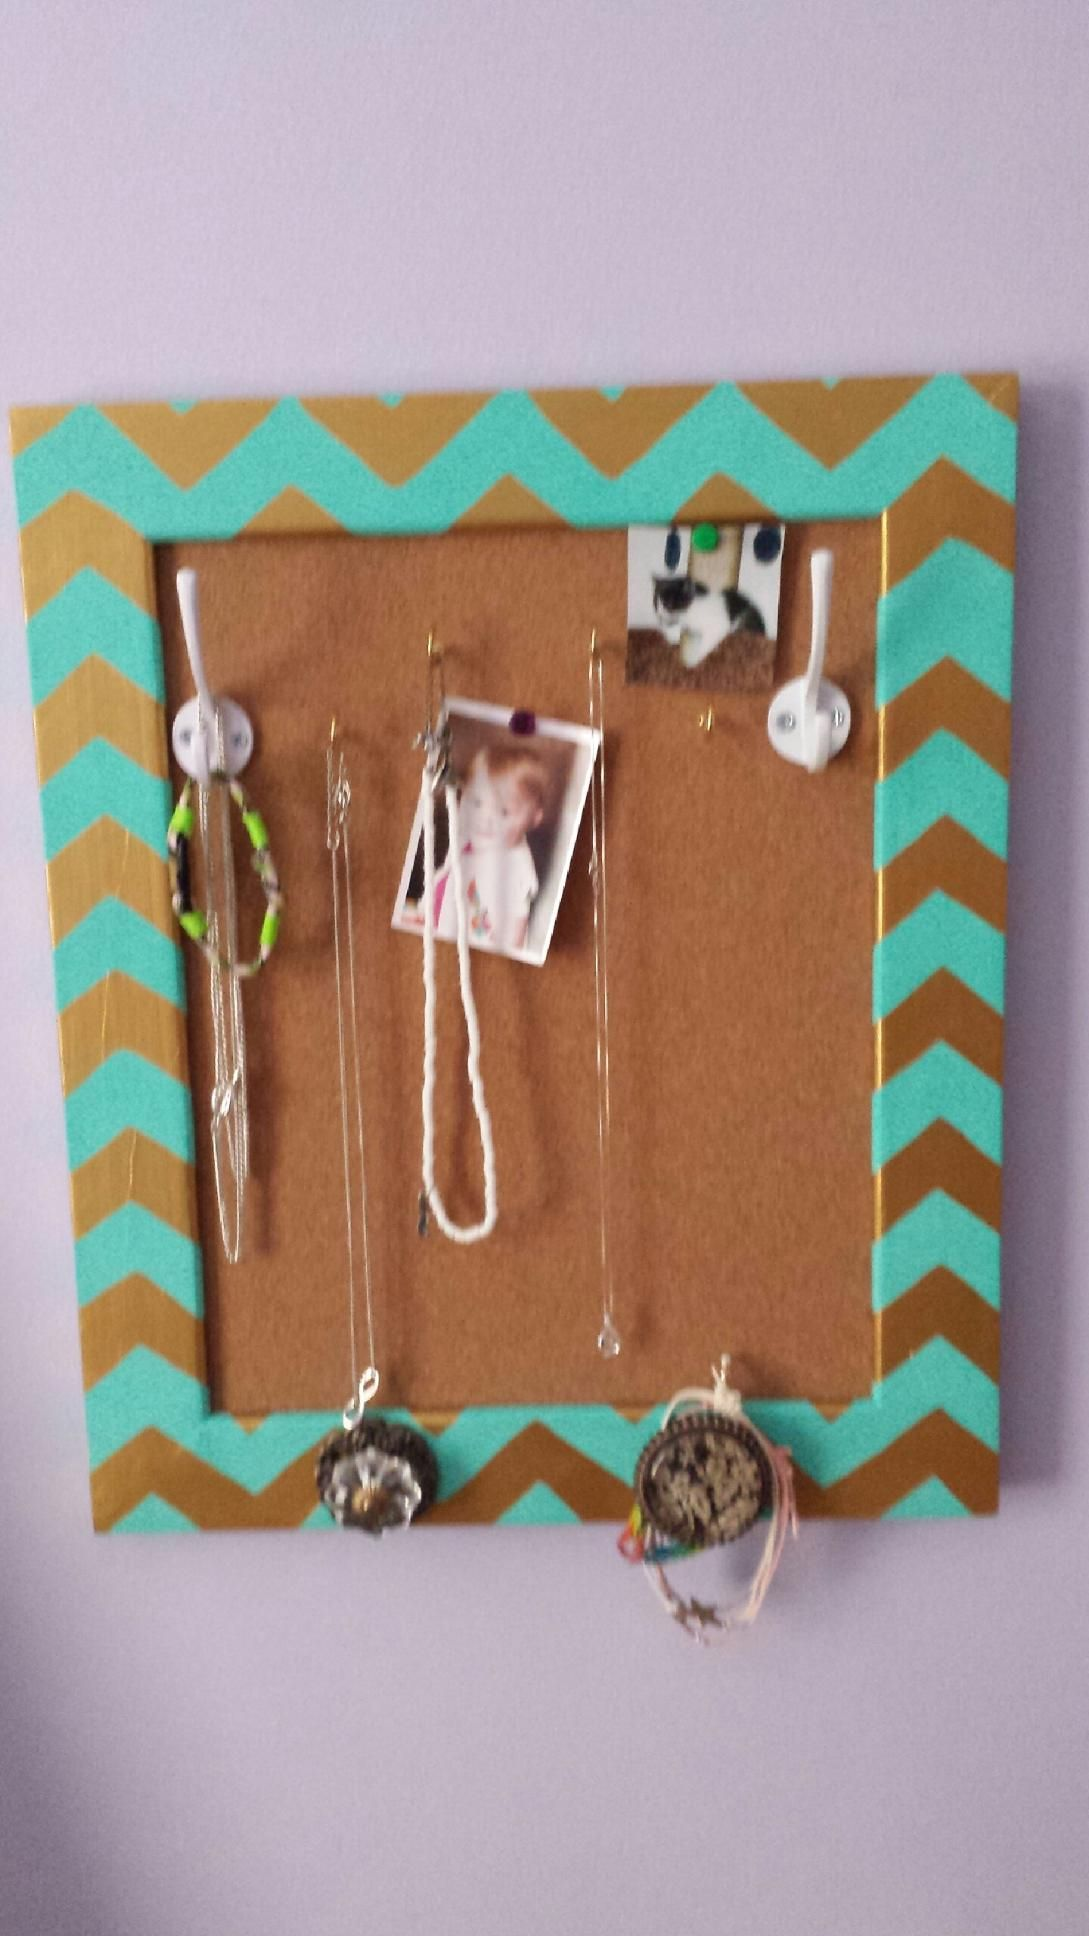 DIY Cork board jewelry holder Made with cork board unfinished